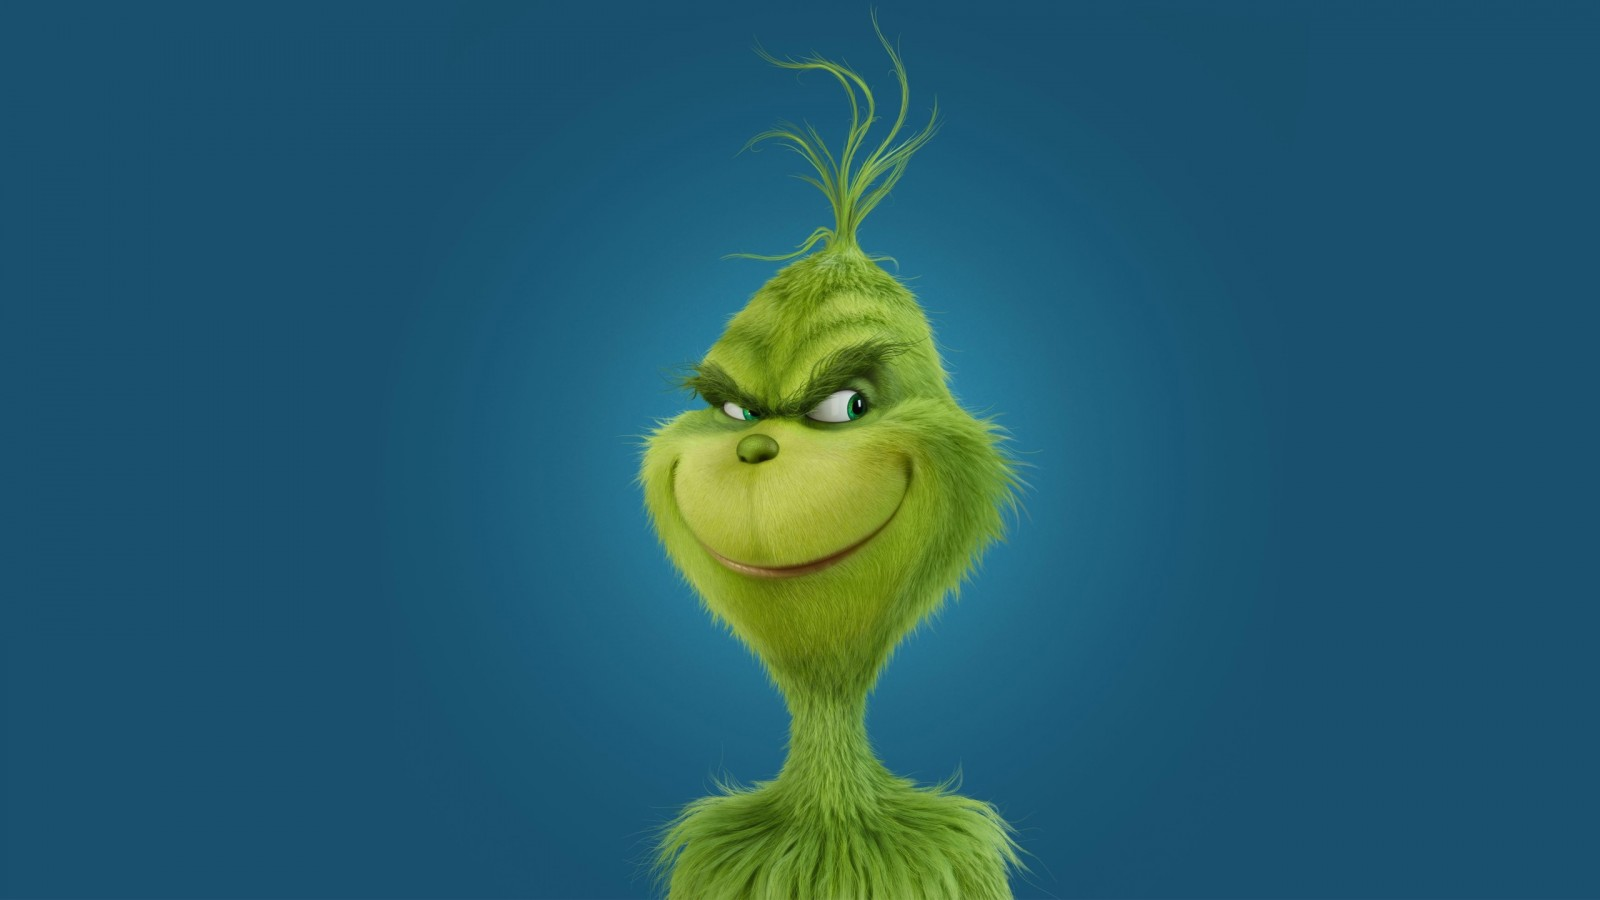 Iphone 6 Wallpaper Cute Animals Grinch Wallpapers Hd Wallpapers Id 17998